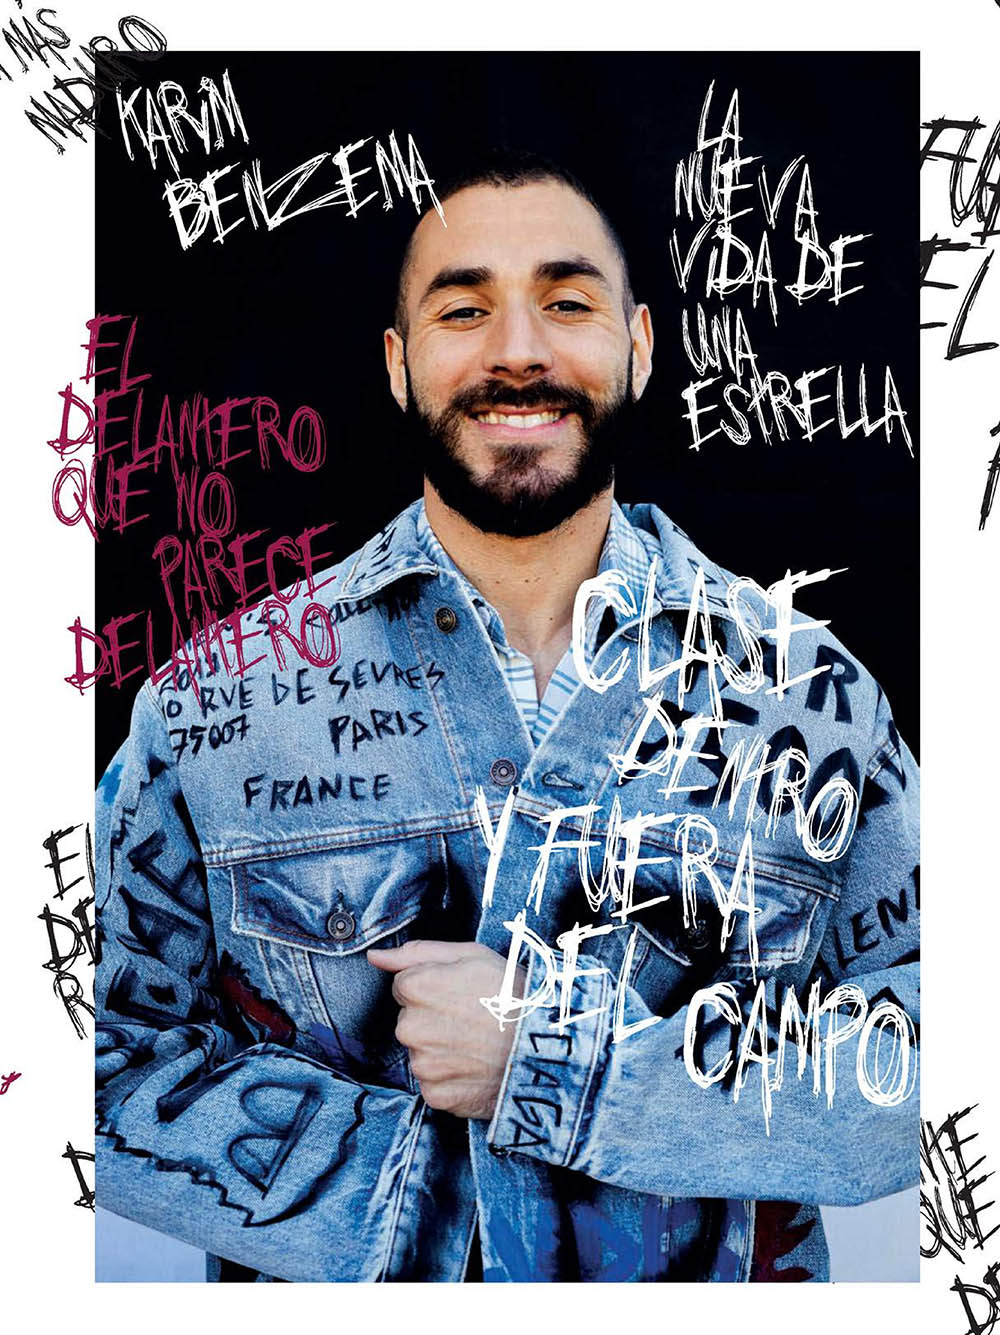 Karim Benzema covers GQ Spain May 2019 by Adria Canameras